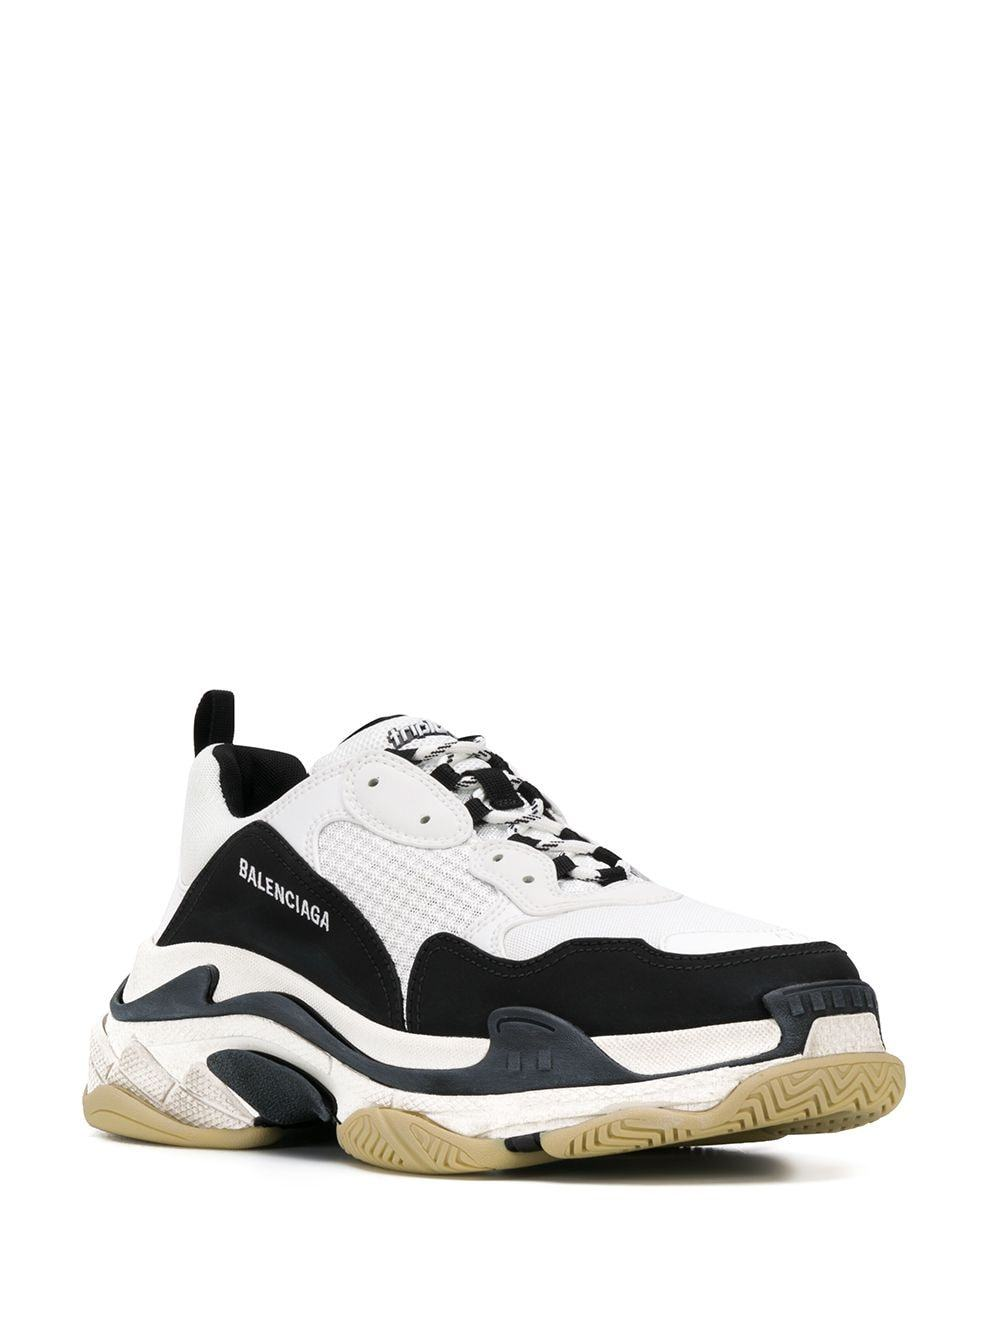 BALENCIAGA double foam triple s sneakers - Maison De Fashion